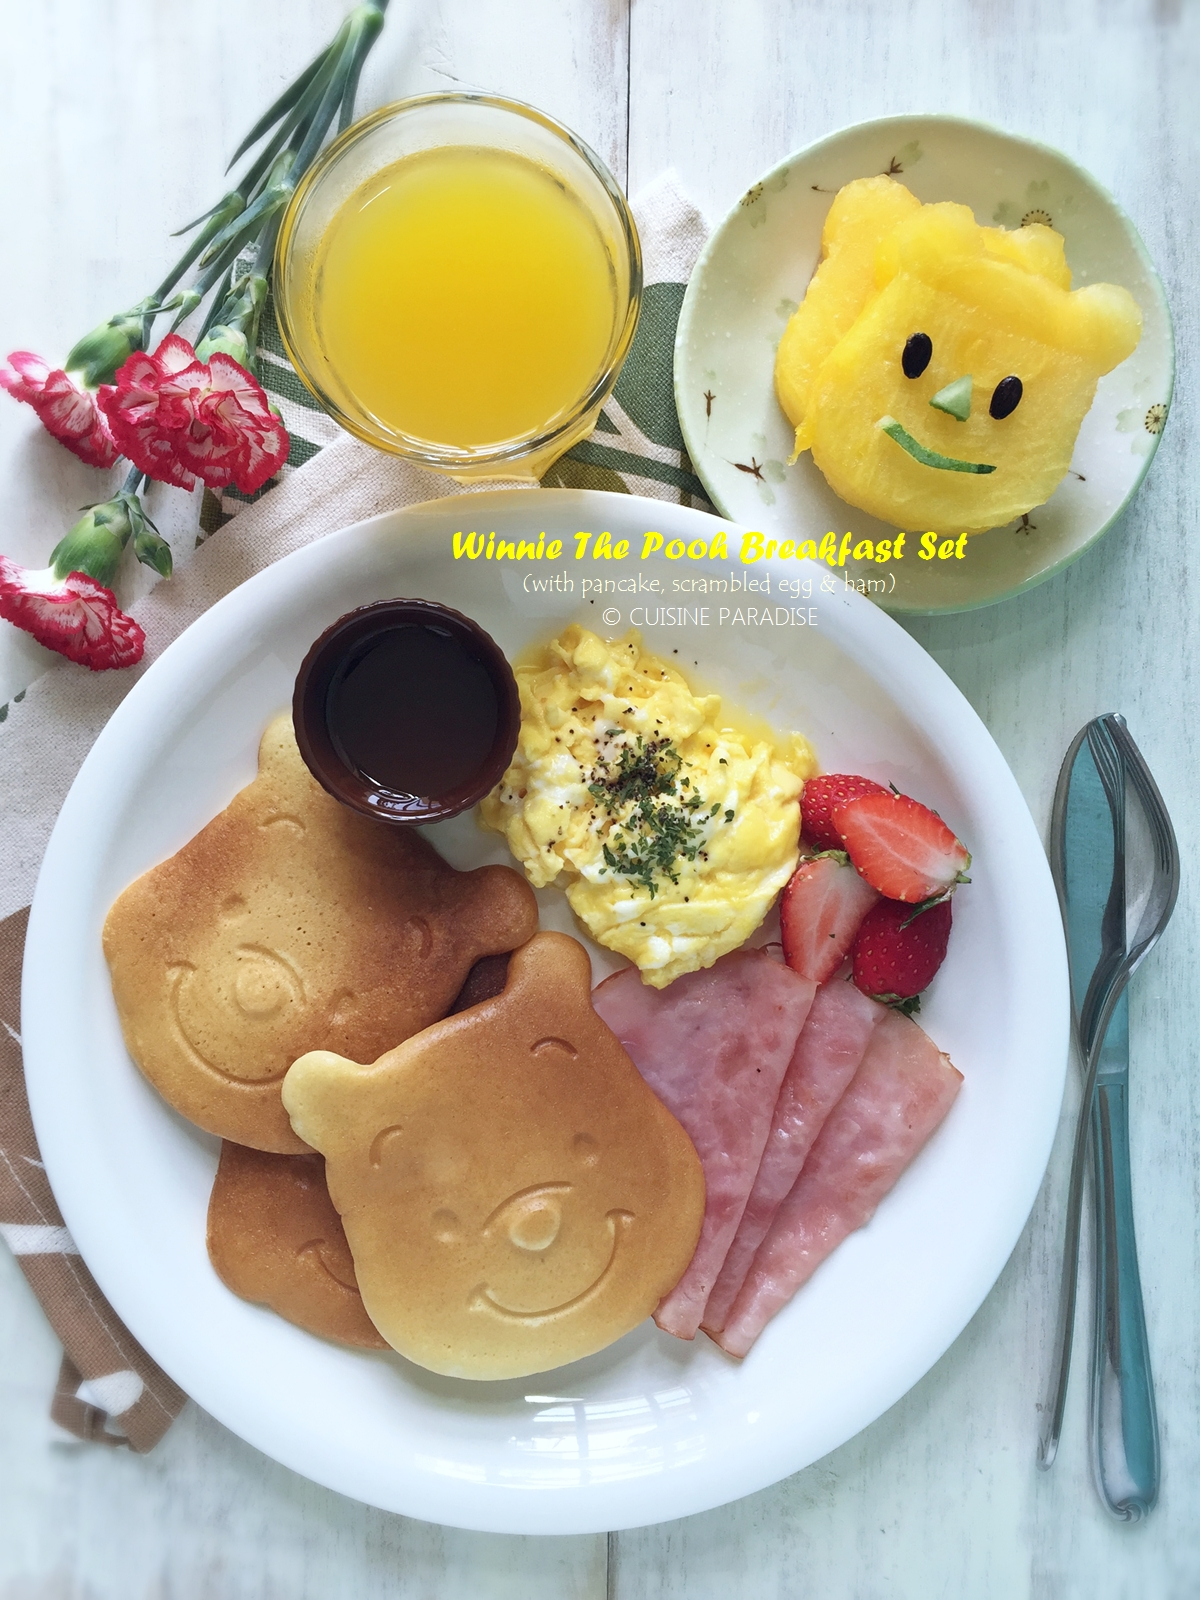 Cuisine paradise singapore food blog recipes reviews and travel recipe video winnie the pooh breakfast set forumfinder Images